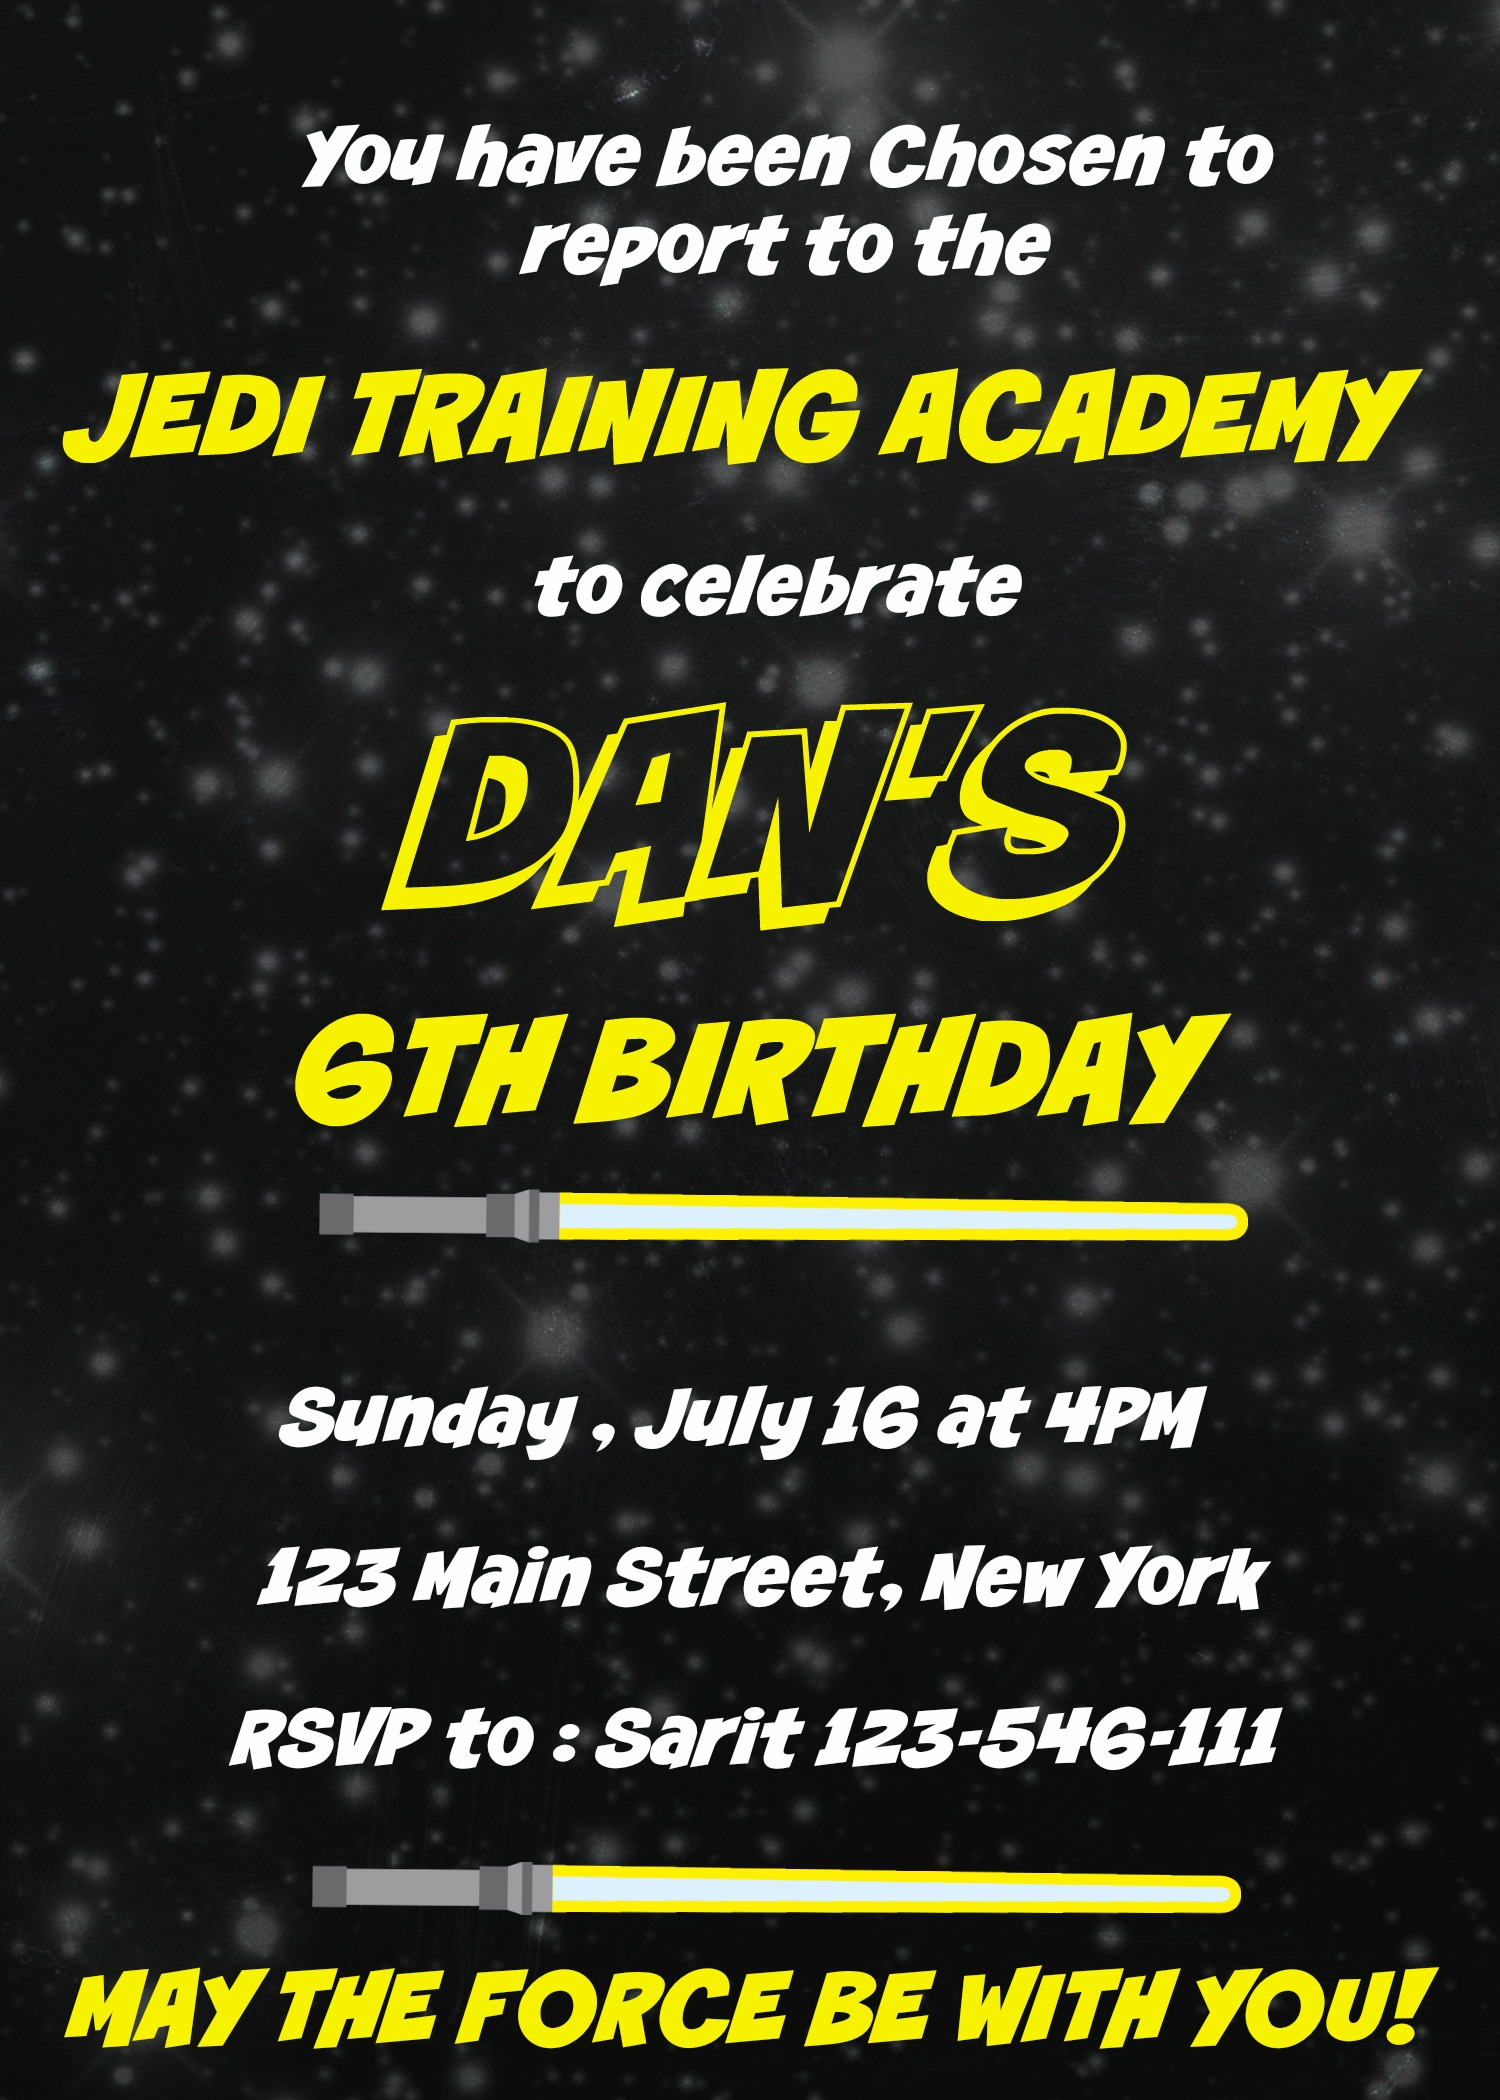 Star Wars Birthday Party Ideas My Practical Guide